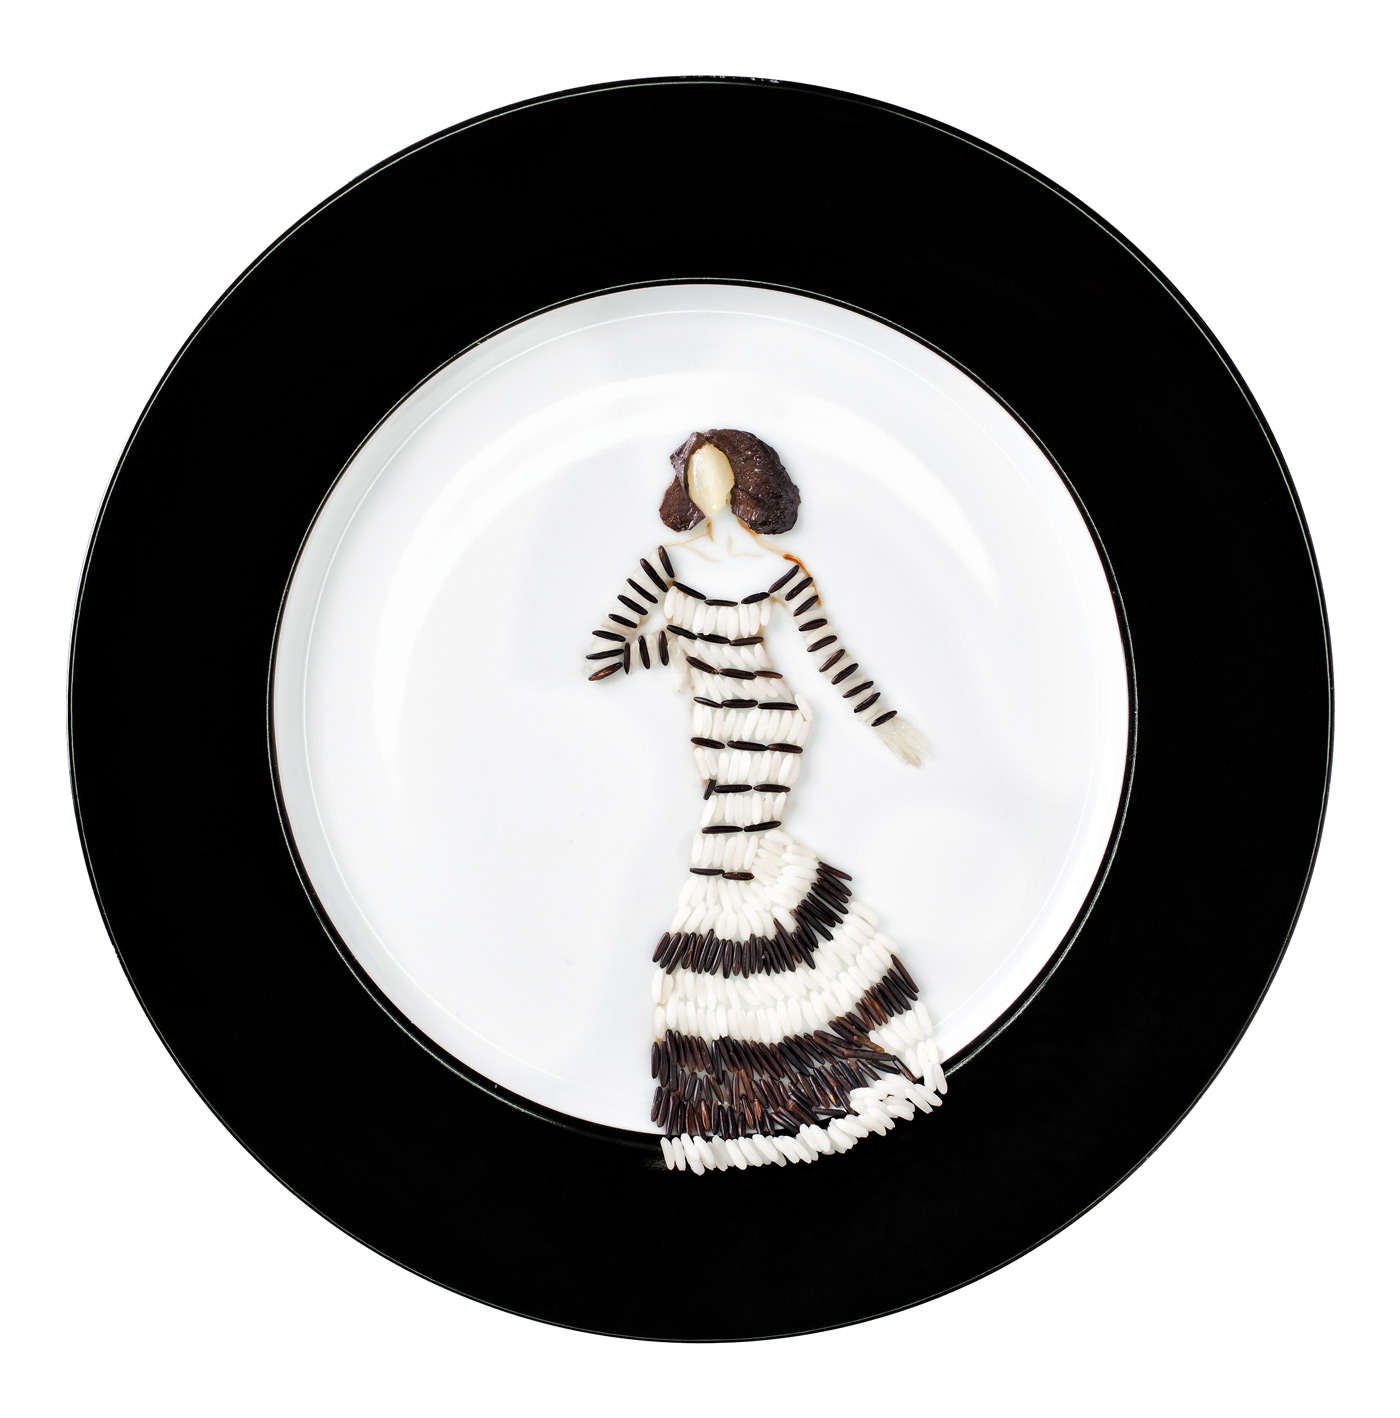 Fashion food, black and white rice with mushrooms depicting a women wearing an op art dress